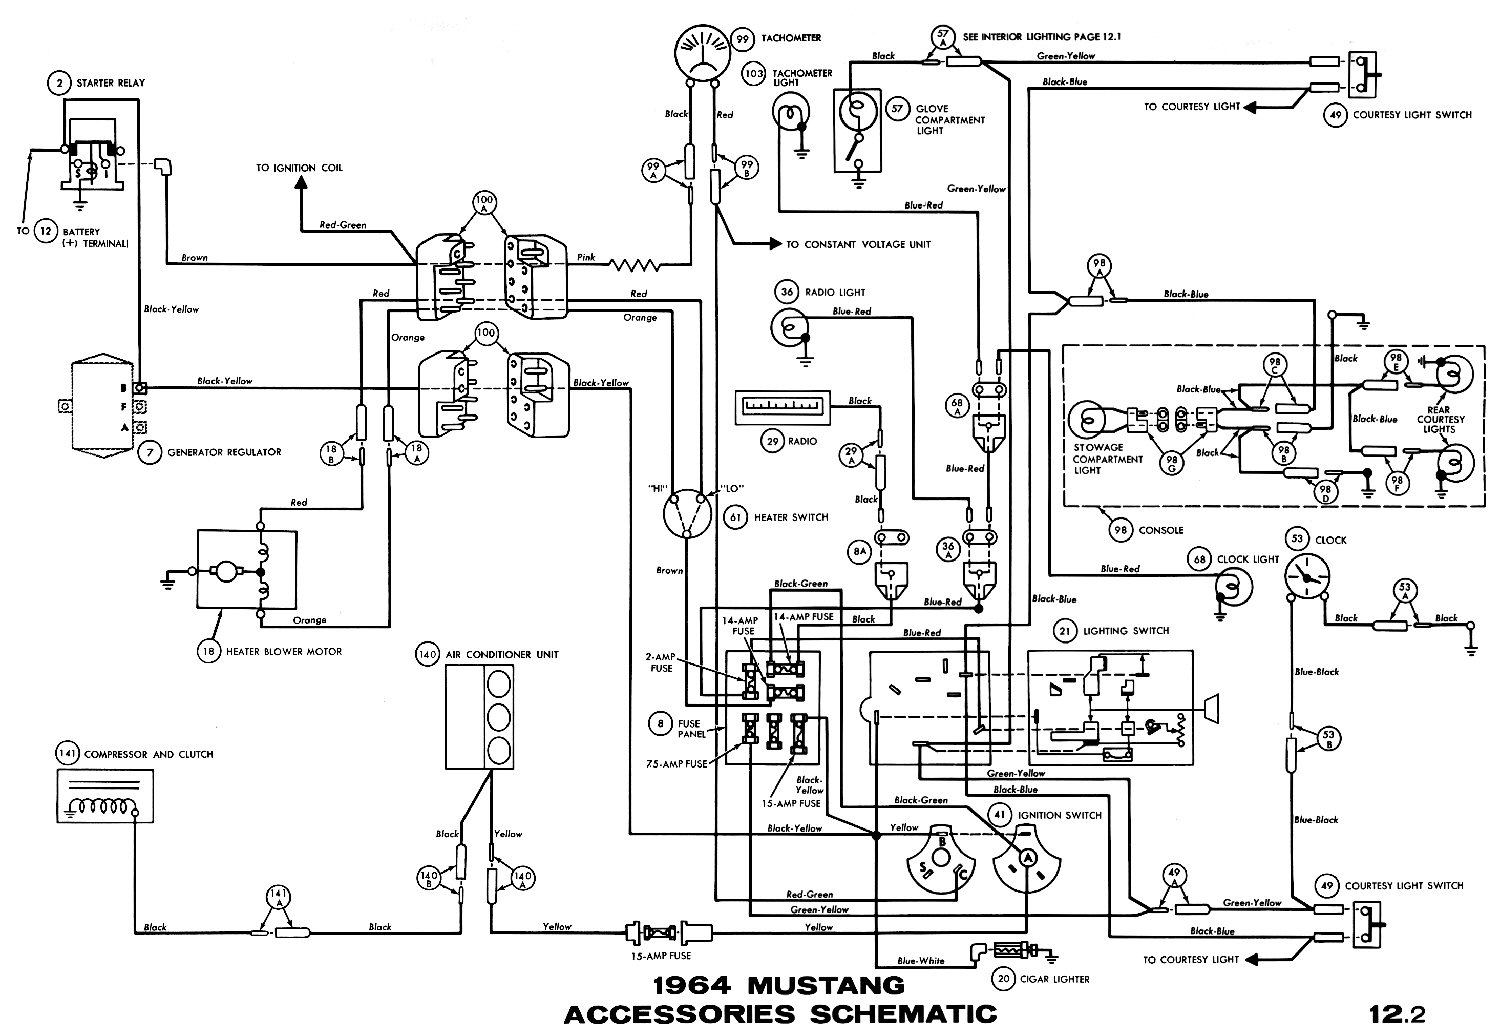 1970 Ford F100 Steering Column Wiring Diagram together with 3y7h1 Good Morning I 1988 Ford F 450 460 Gas Engine I as well 9032 Wiring Problemhelp besides 1964 Mustang Wiring Diagrams further Wiring Diagram 70ext Lights02 In 1970 Ford F100. on 1966 ford f100 alternator wiring diagram